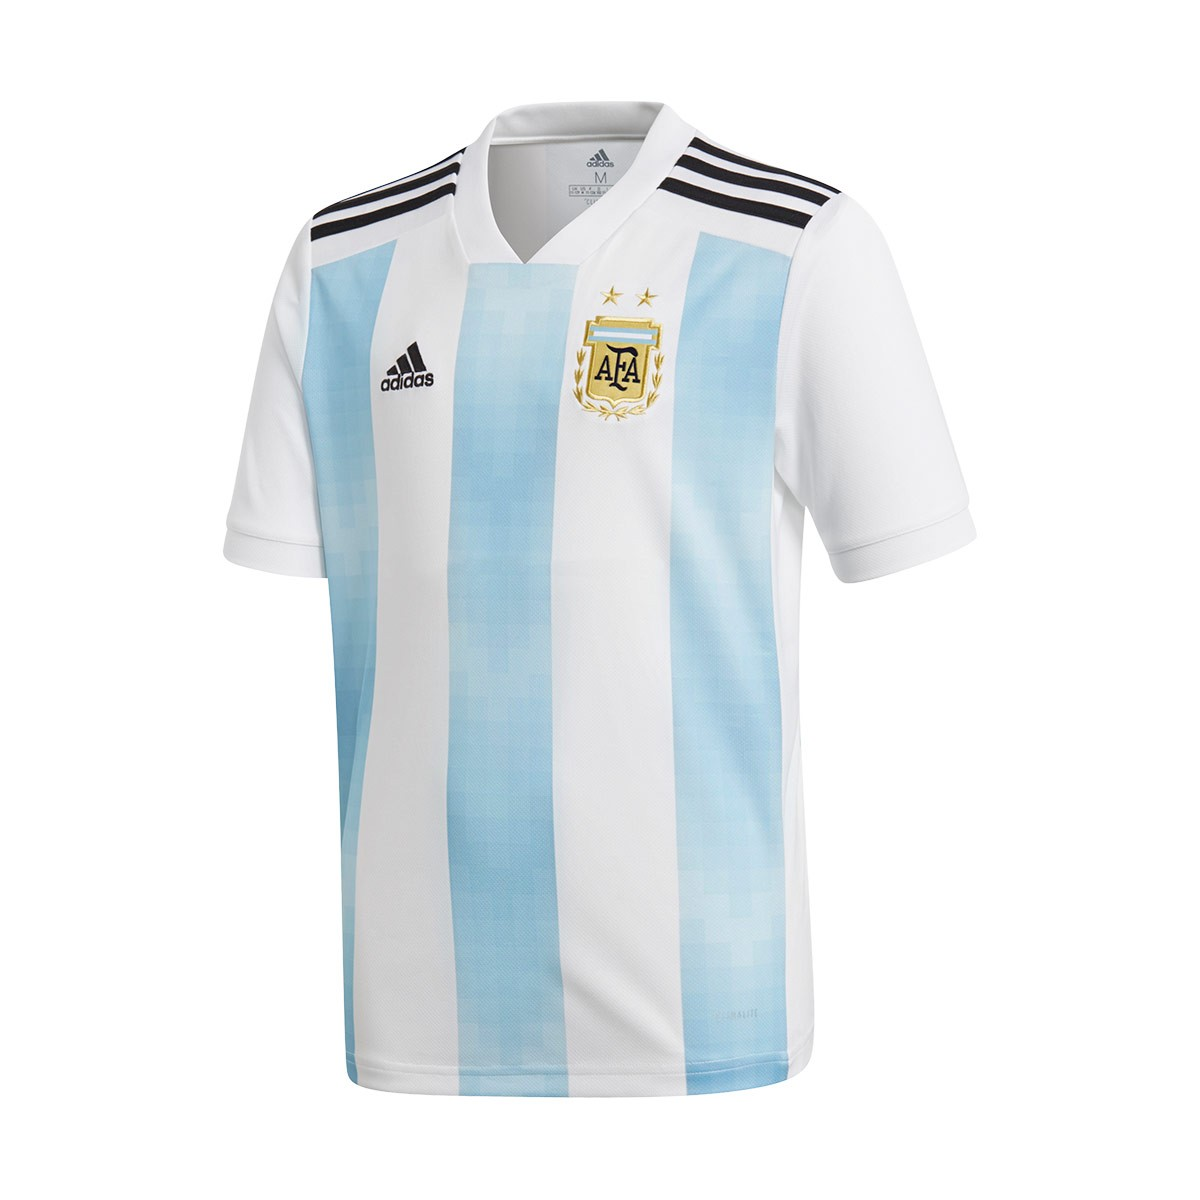 6be4064e211 Jersey adidas Kids Argentina 2017-2018 Home White-Clear blue-Black ...